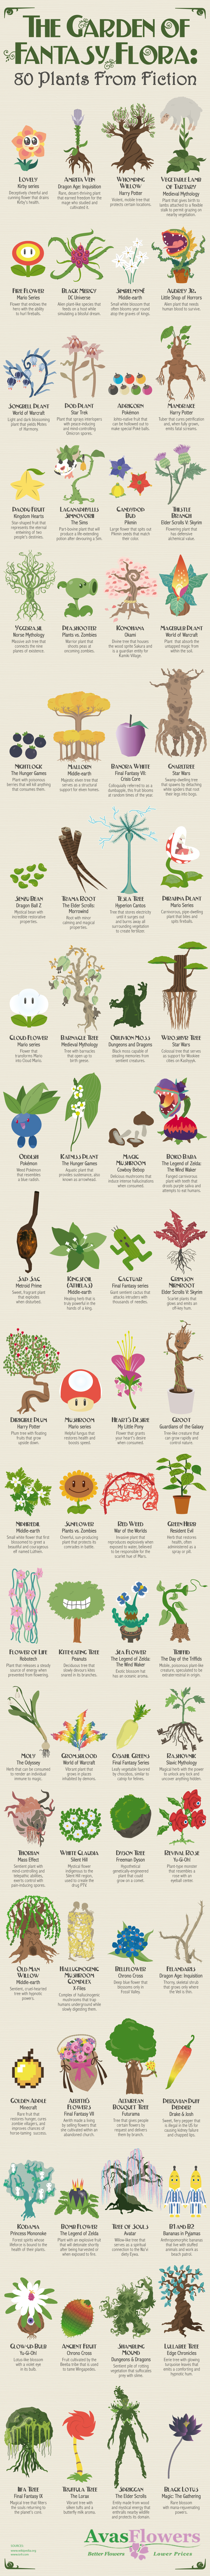 The Garden of Fantasy Flora: 80 Plants from Fiction